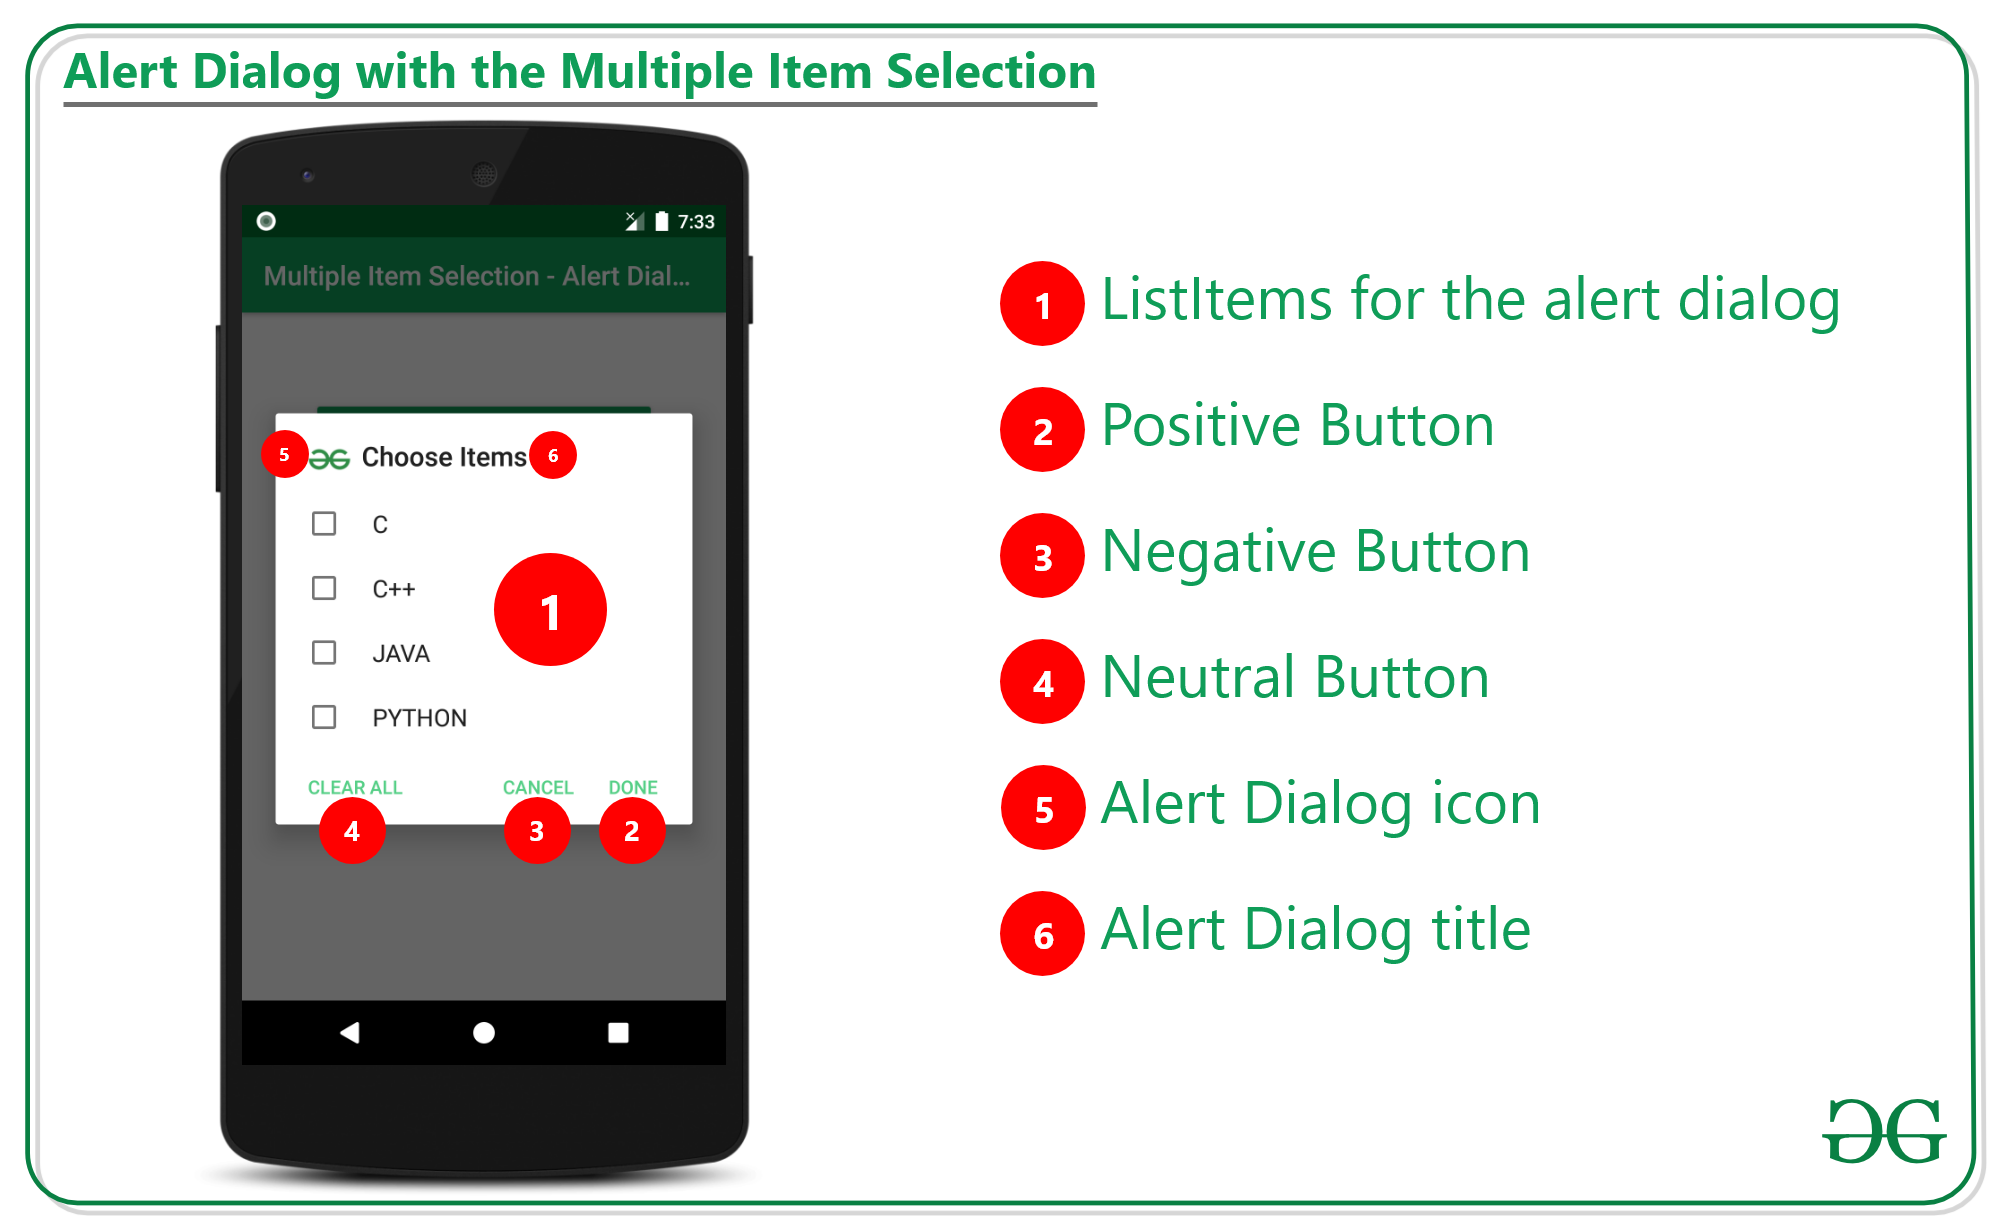 Alert Dialog with MultipleItemSelection in Android